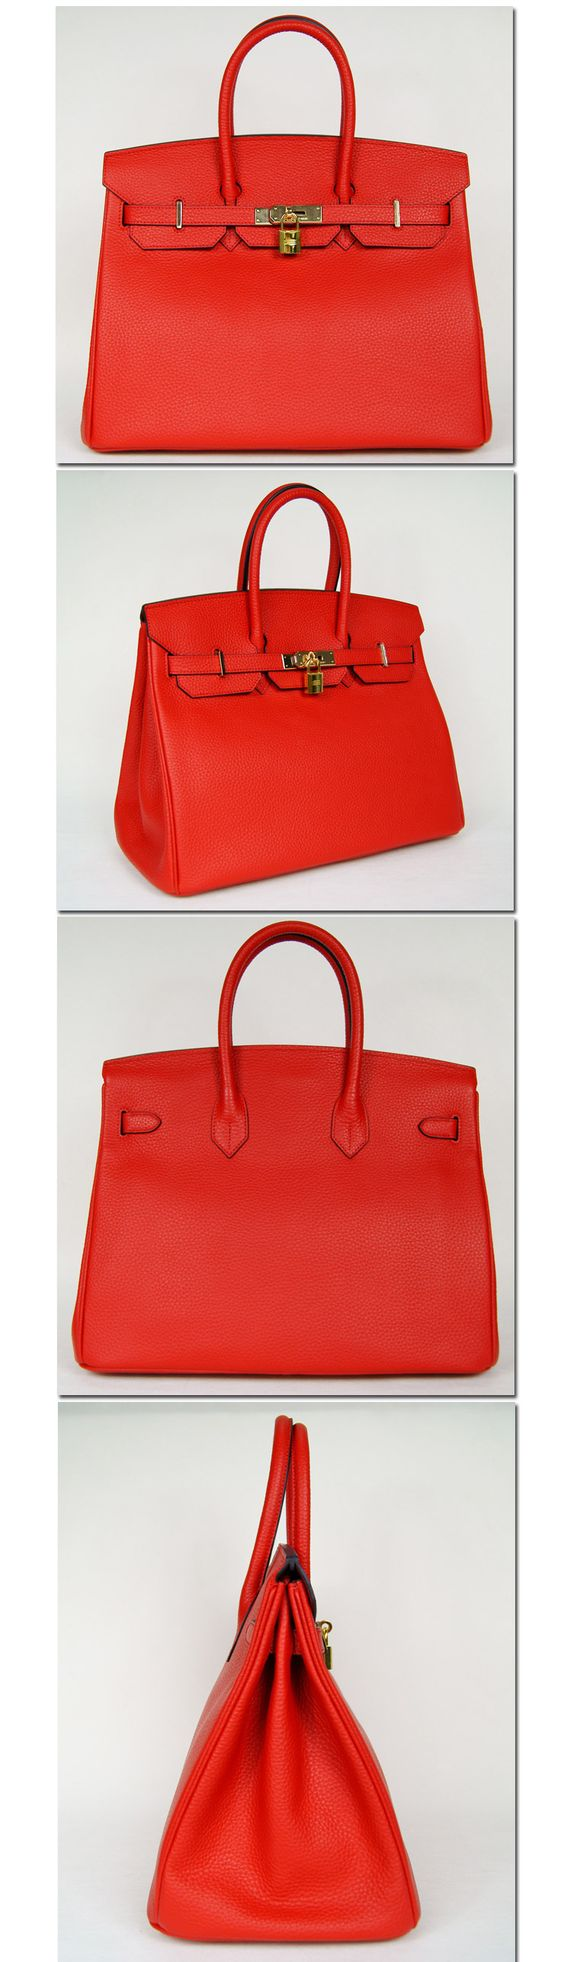 birkin bag prices - Hermes Birkin Bag- the most beautiful, most expensive bag I will ...